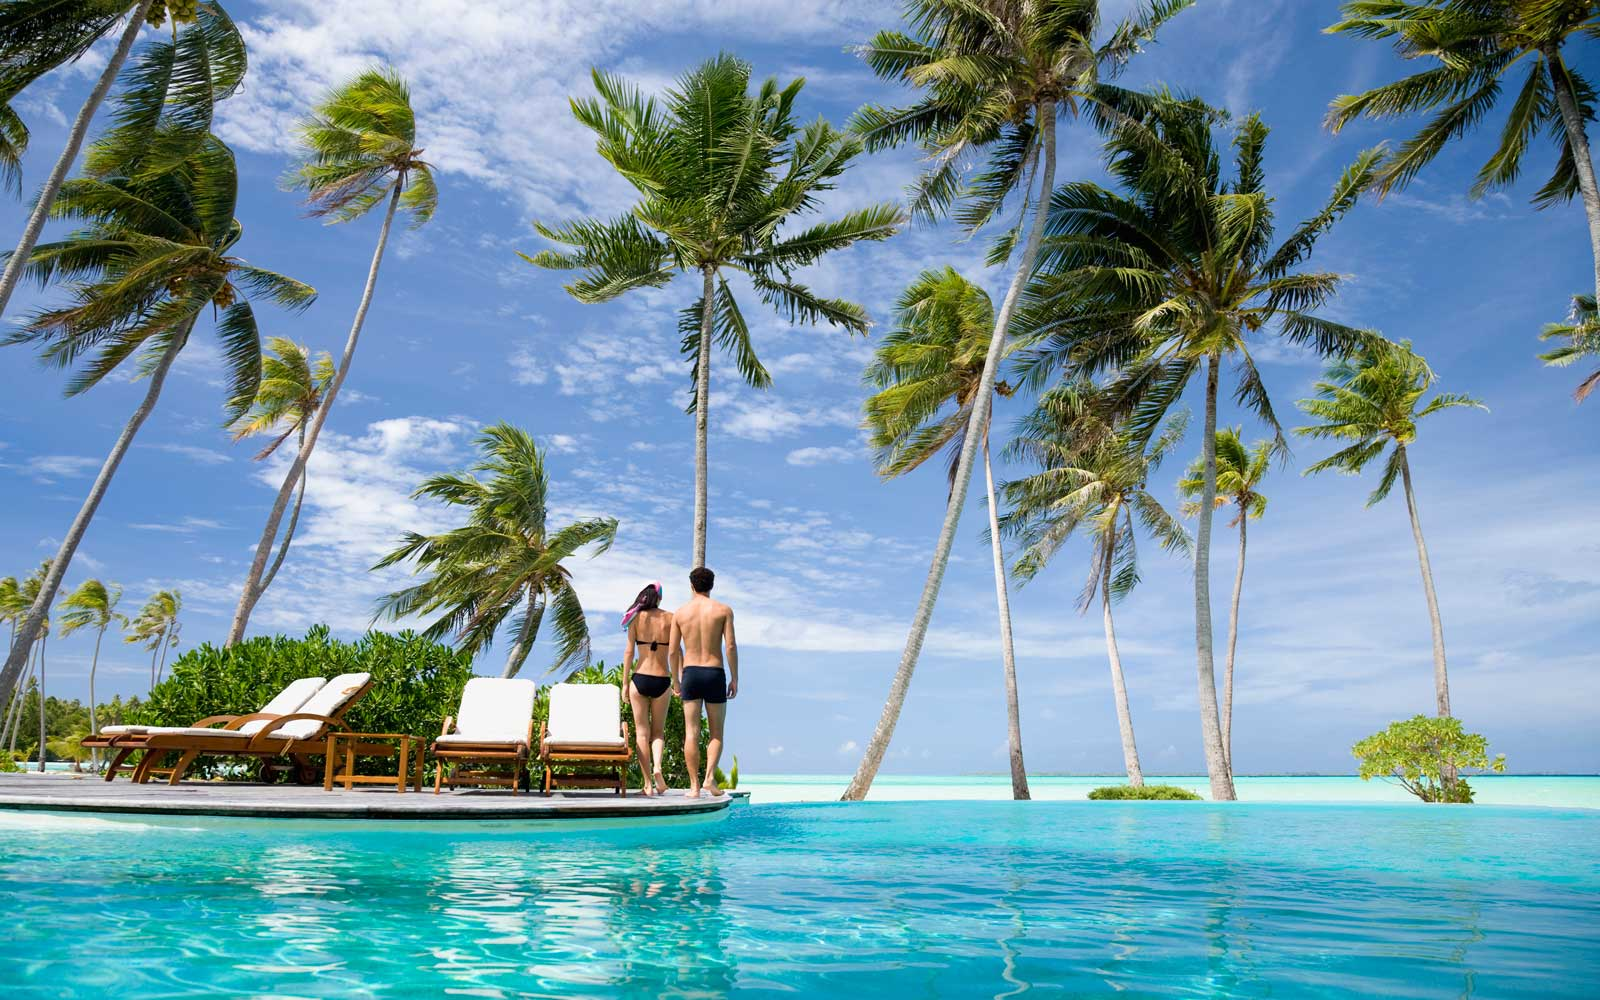 Couple walking past a resort pool, with palm trees